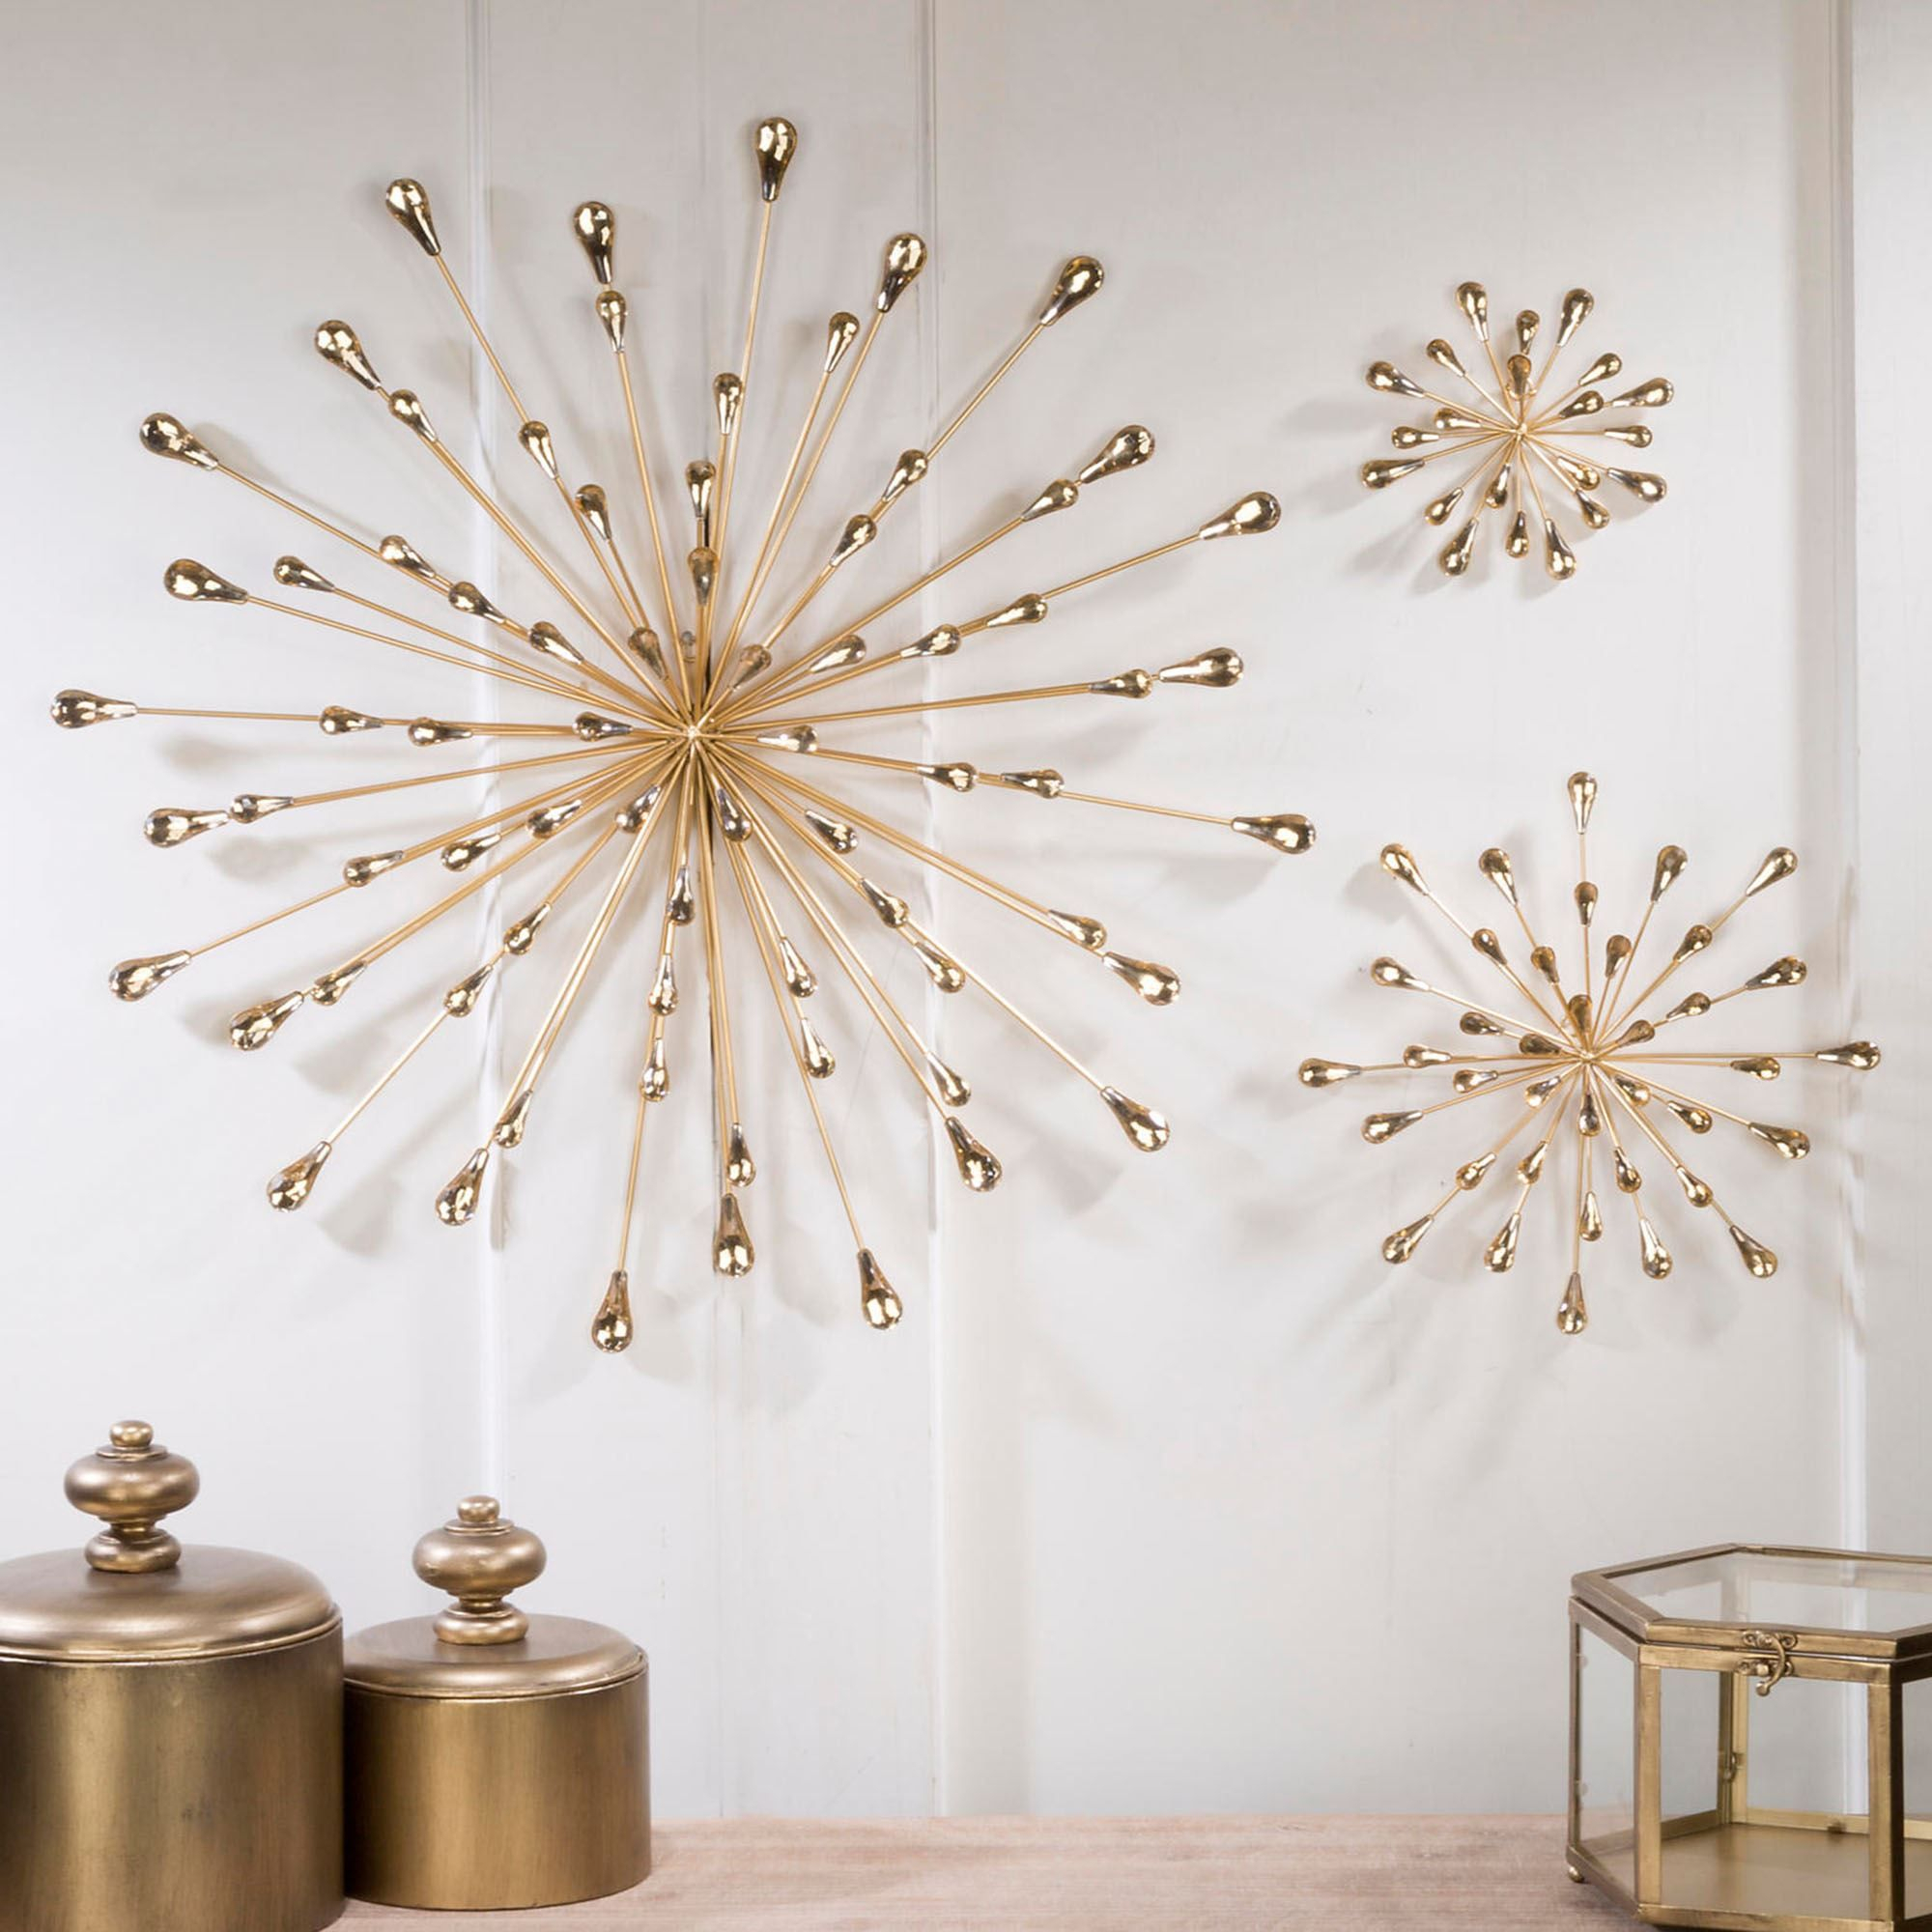 Jelena Gold Starburst Metal Wall Art | Projects In 2019 In Starburst Wall Decor By Willa Arlo Interiors (View 13 of 30)